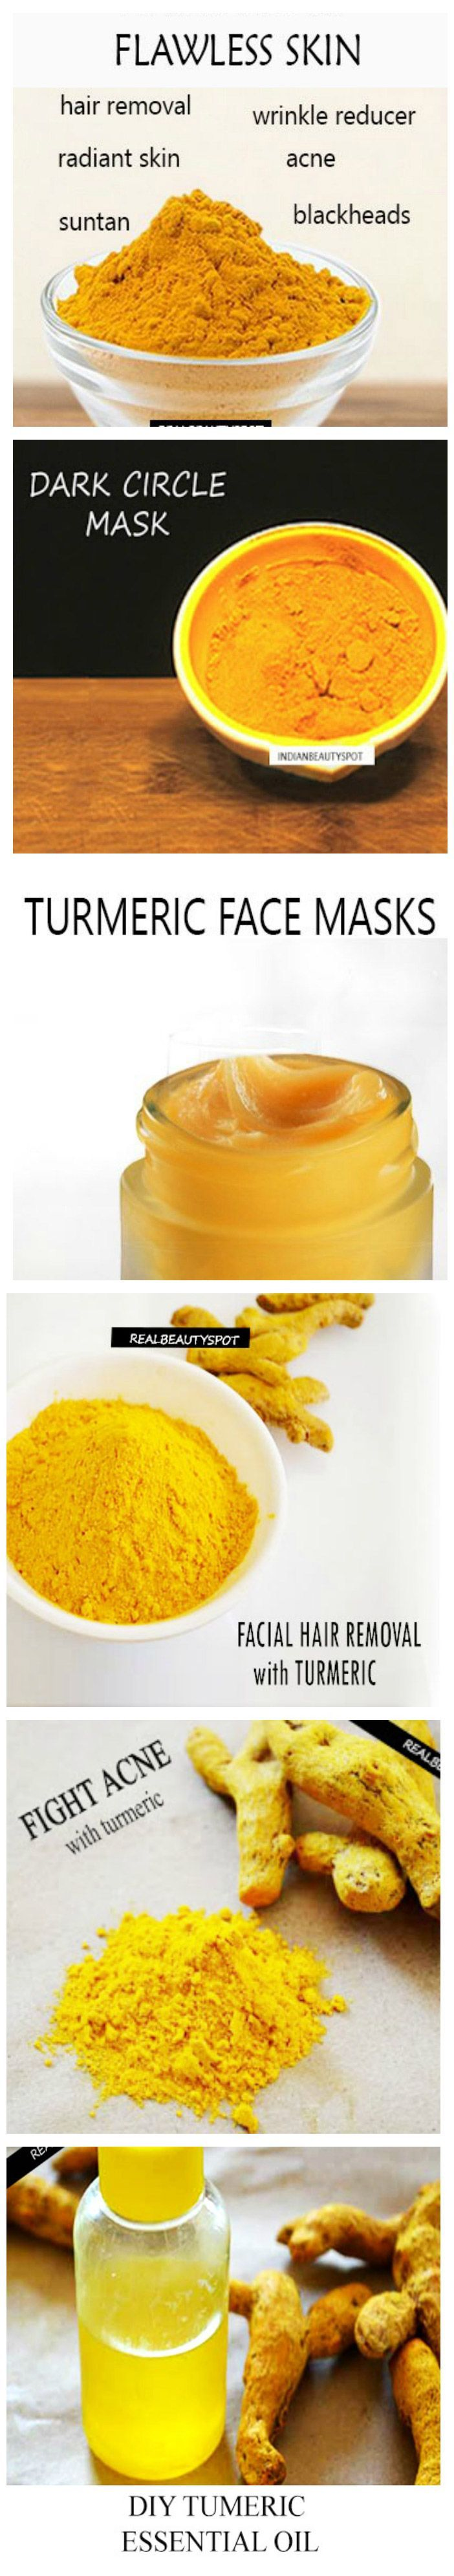 Turmeric for dark circles and whiten teeth